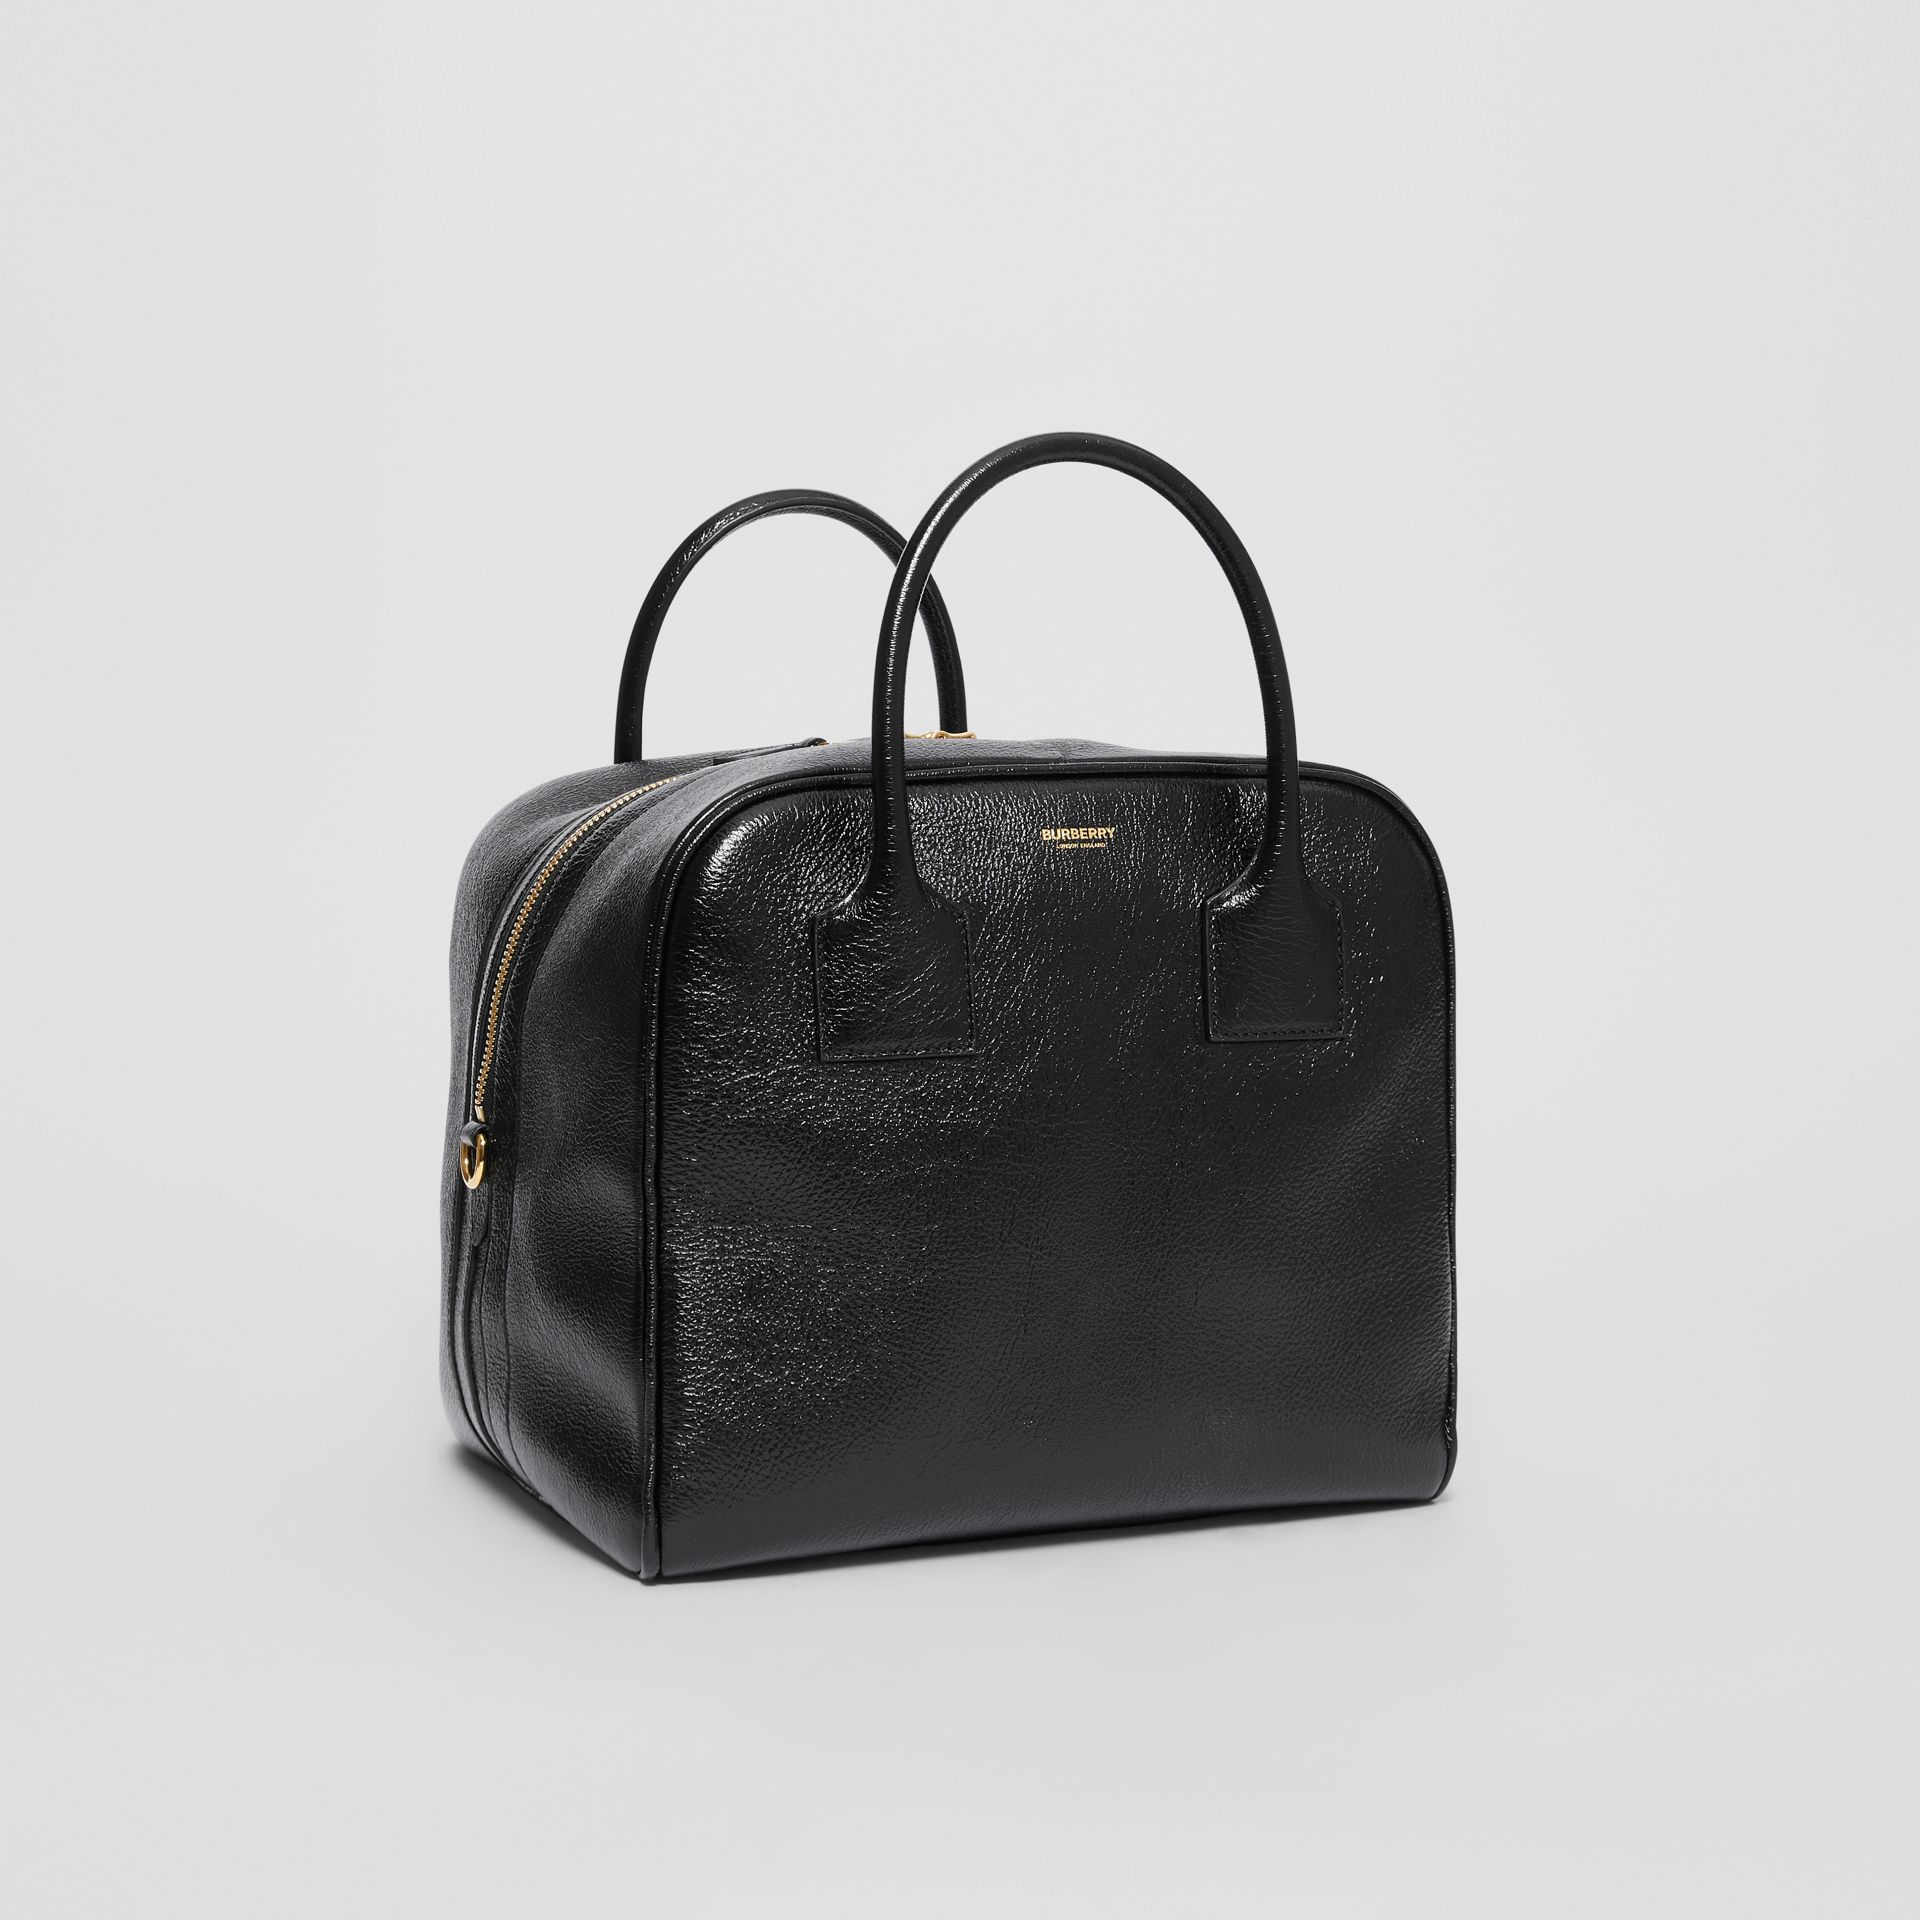 Medium Lambskin Cube Bag in Black - Women | Burberry Canada - gallery image 6